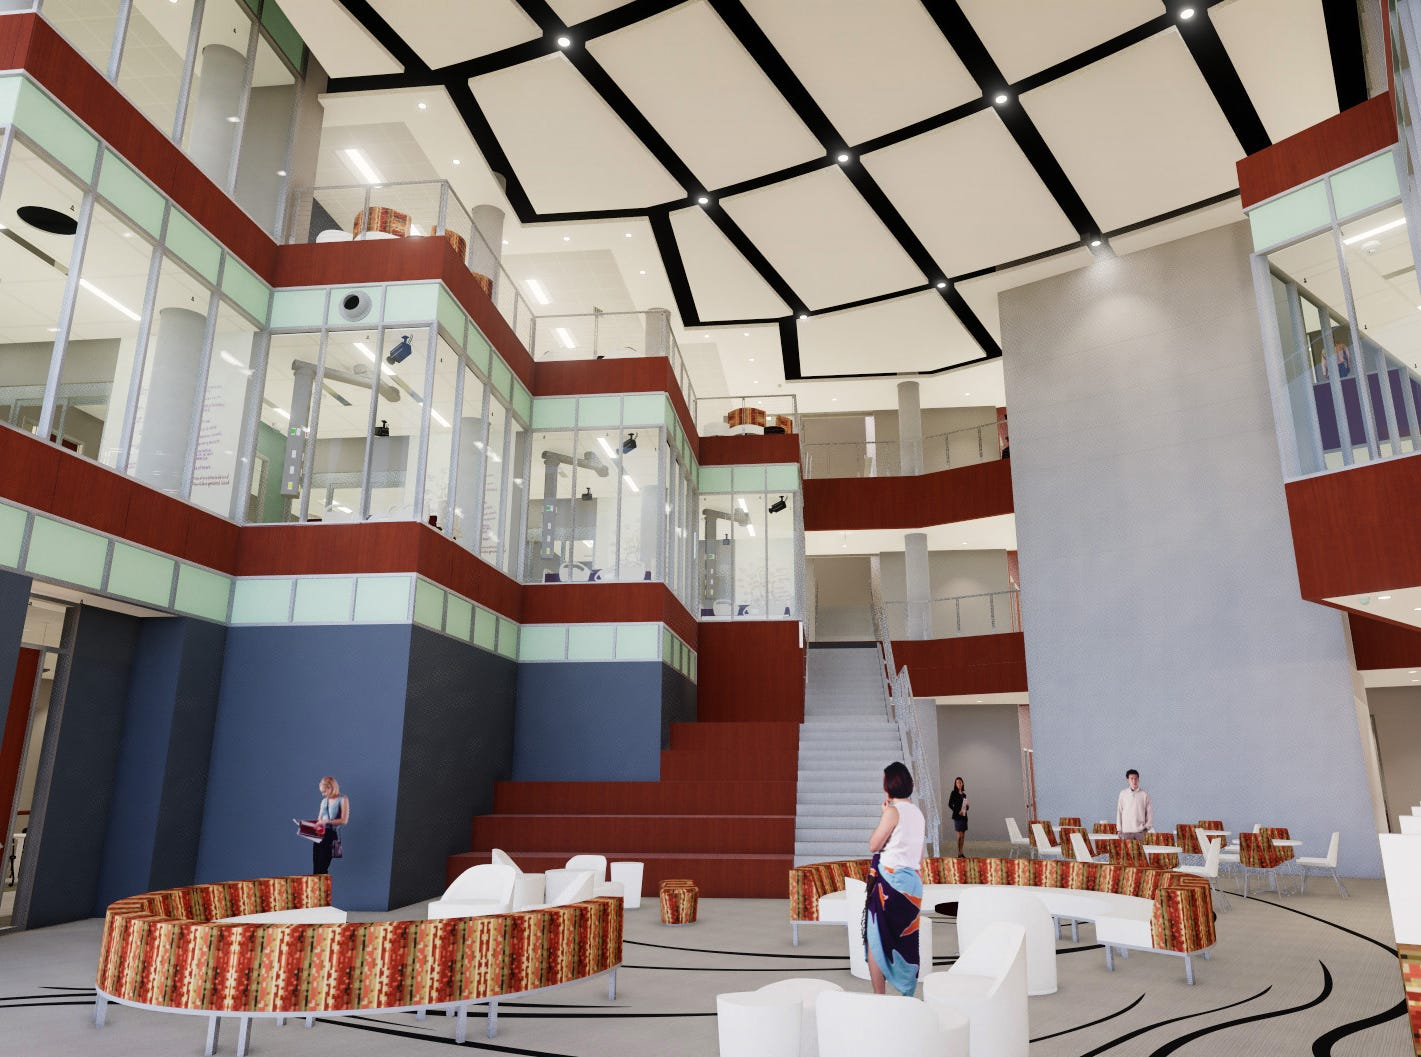 Artist's rendering of the East lobby of the Health Sciences and Human Services building under construction at Midwestern State University.